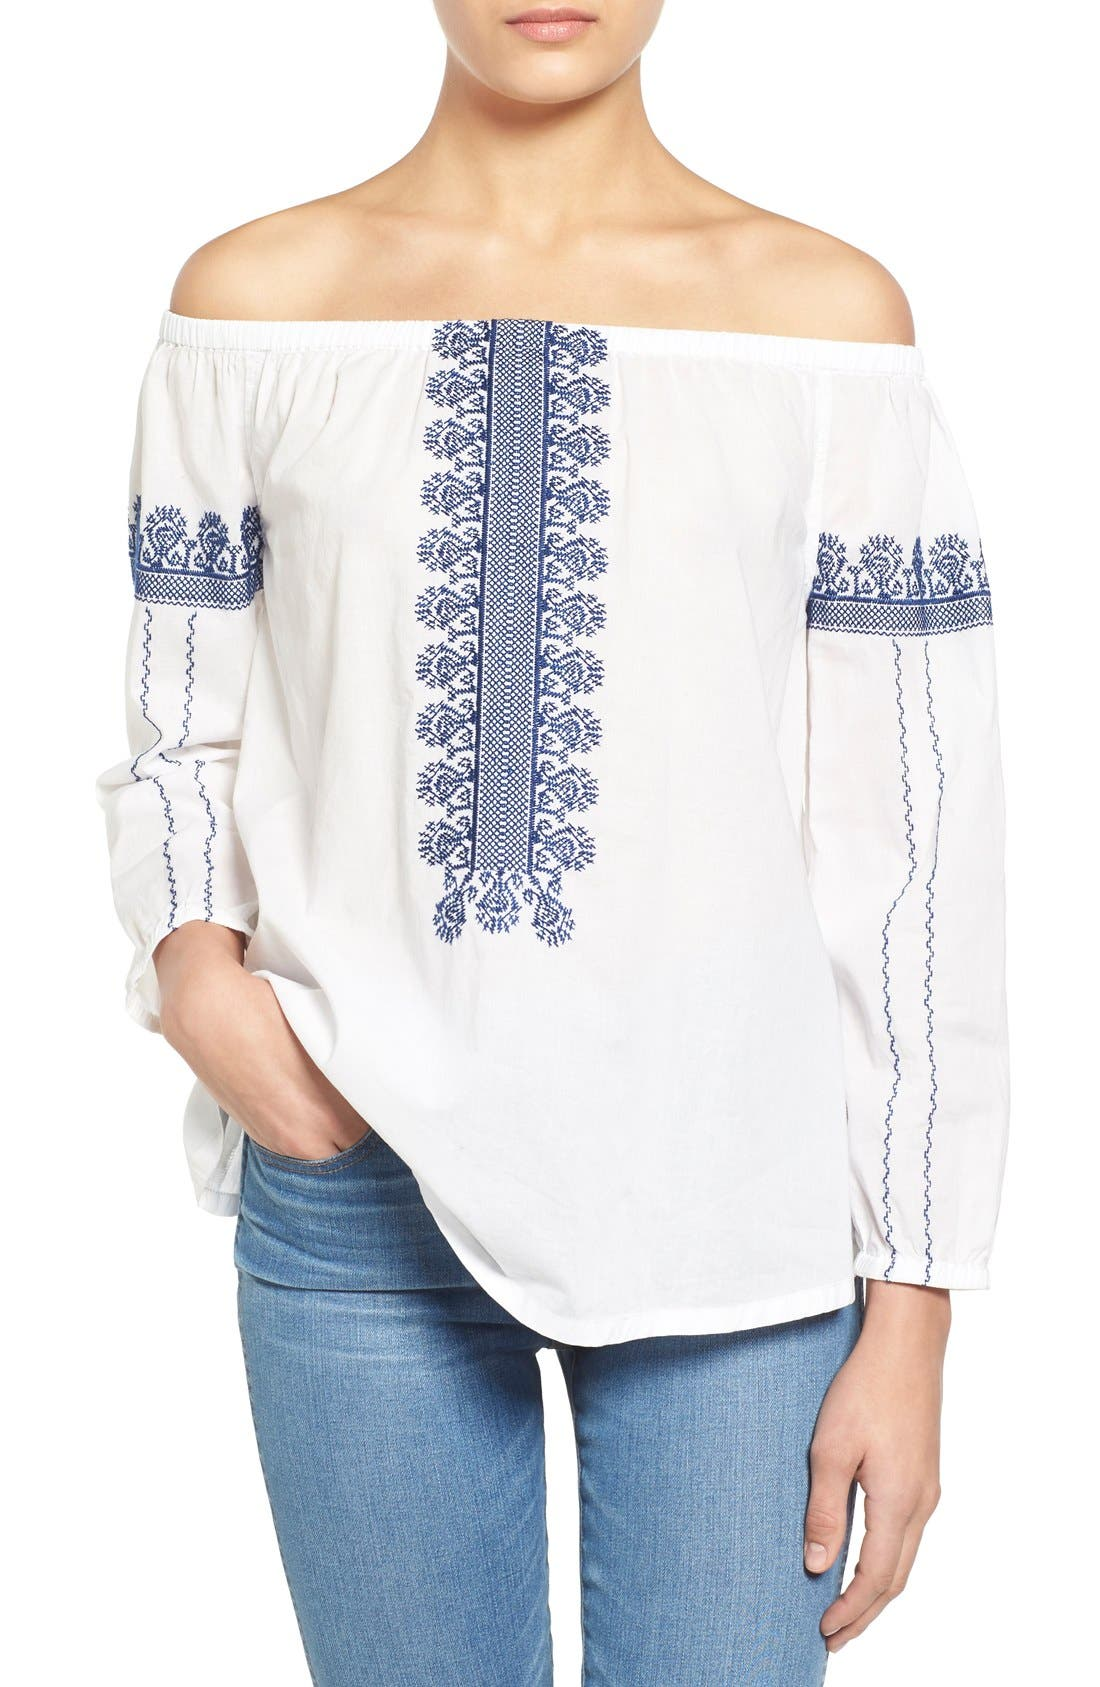 Main Image - Madewell 'Folktale' Off the Shoulder Top